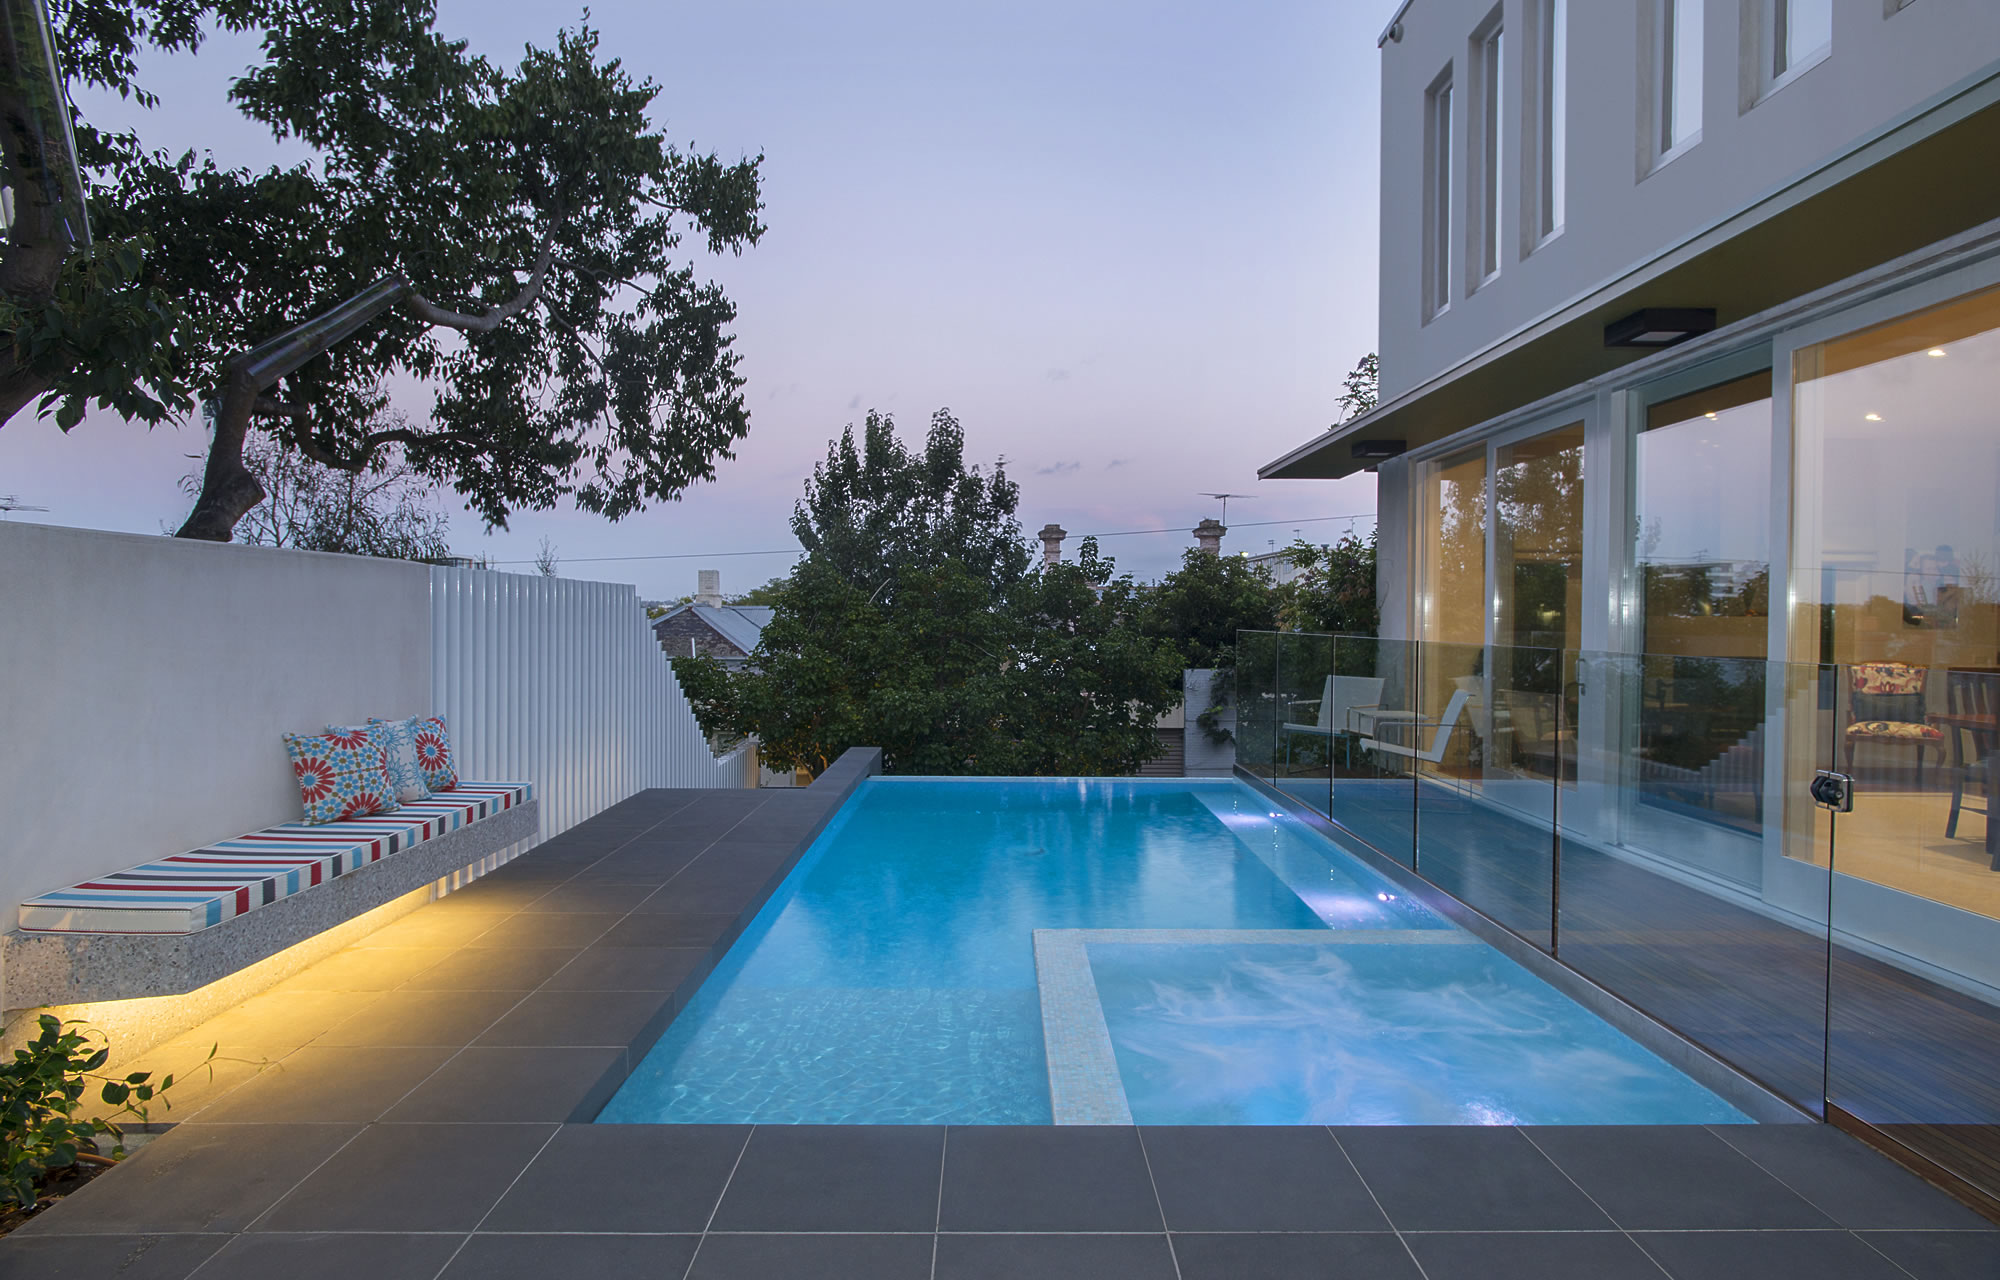 Pool Designs With Spa Intended Oftb Melbourne Swimming Pool Builders Landscape Architecture Design Garden Custom Concrete Construction Spas Plunge Pools